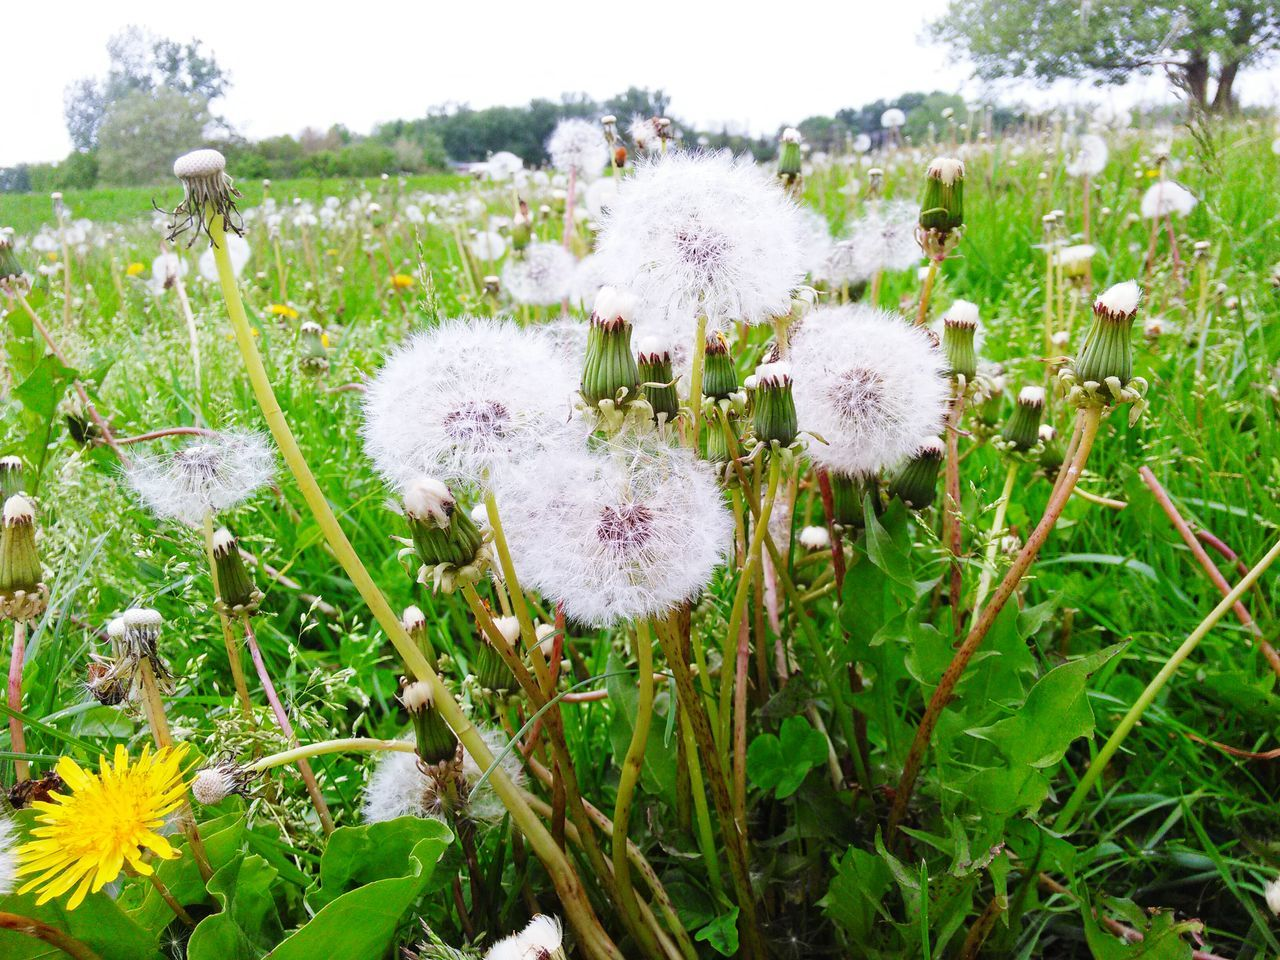 Dandelions Turned To Seed Weeds Weeds Are Beautiful Too Field Ground